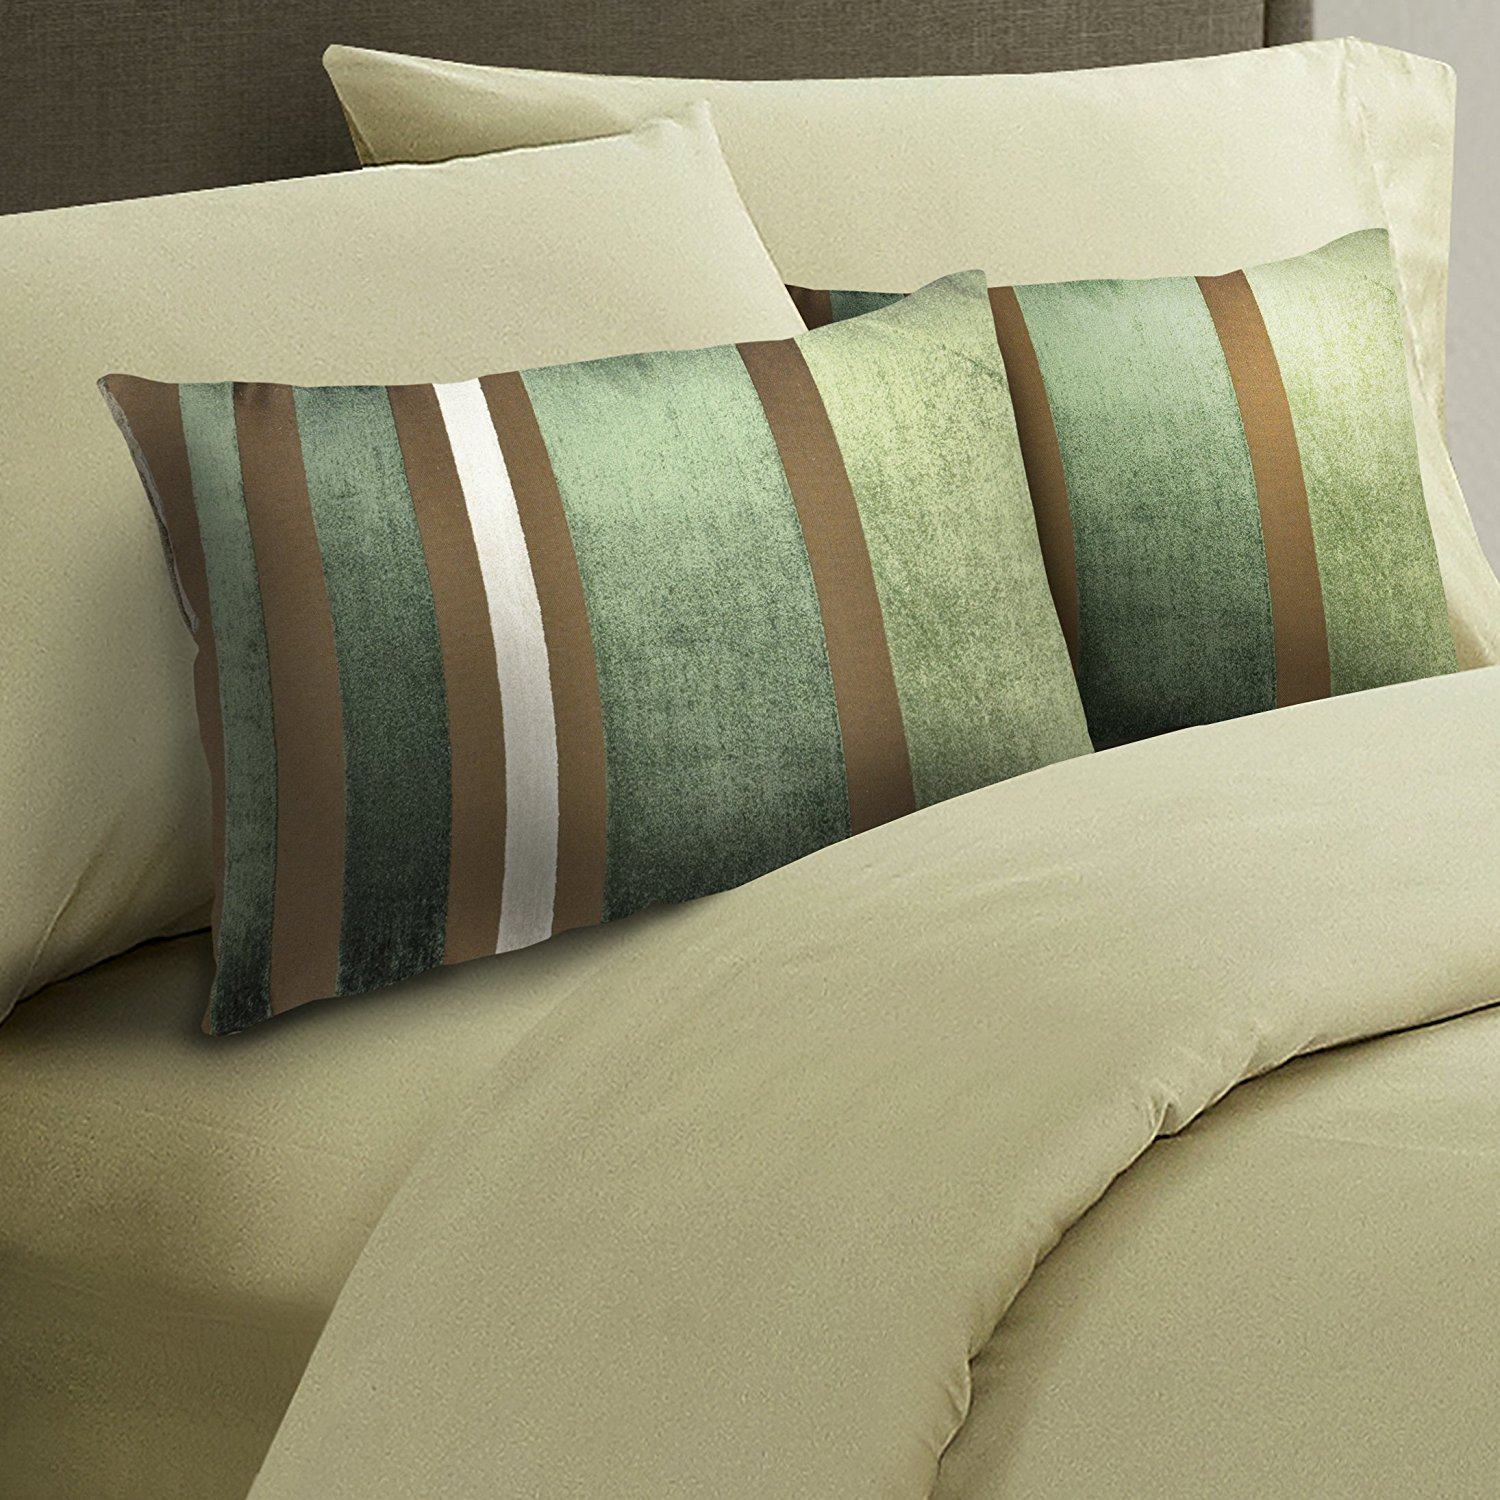 """Premium Decorative Throw Pillow 2-Pack – Unique Luxurious Design, Comfortable & Stylish Home Décor Accessory, Ideal 15""""X22"""" Dimensions, Easy To Clean & Durable Material (Green, Brown, Cream)"""